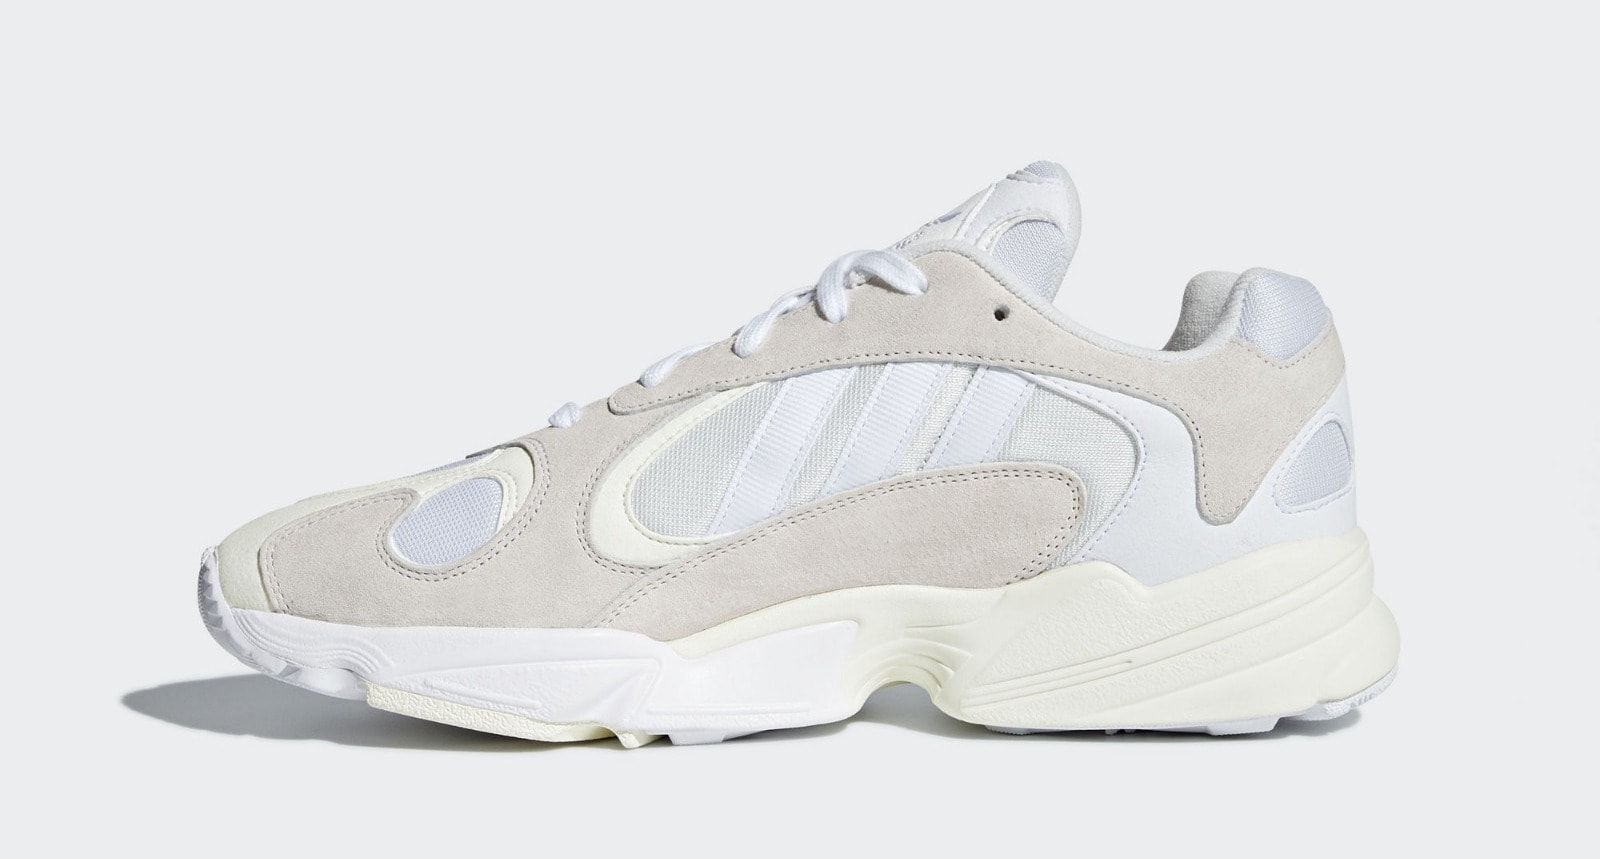 afb3c1d4a20 uk trainers adidas yung 1 black white official photos 6db99 195b0 ...